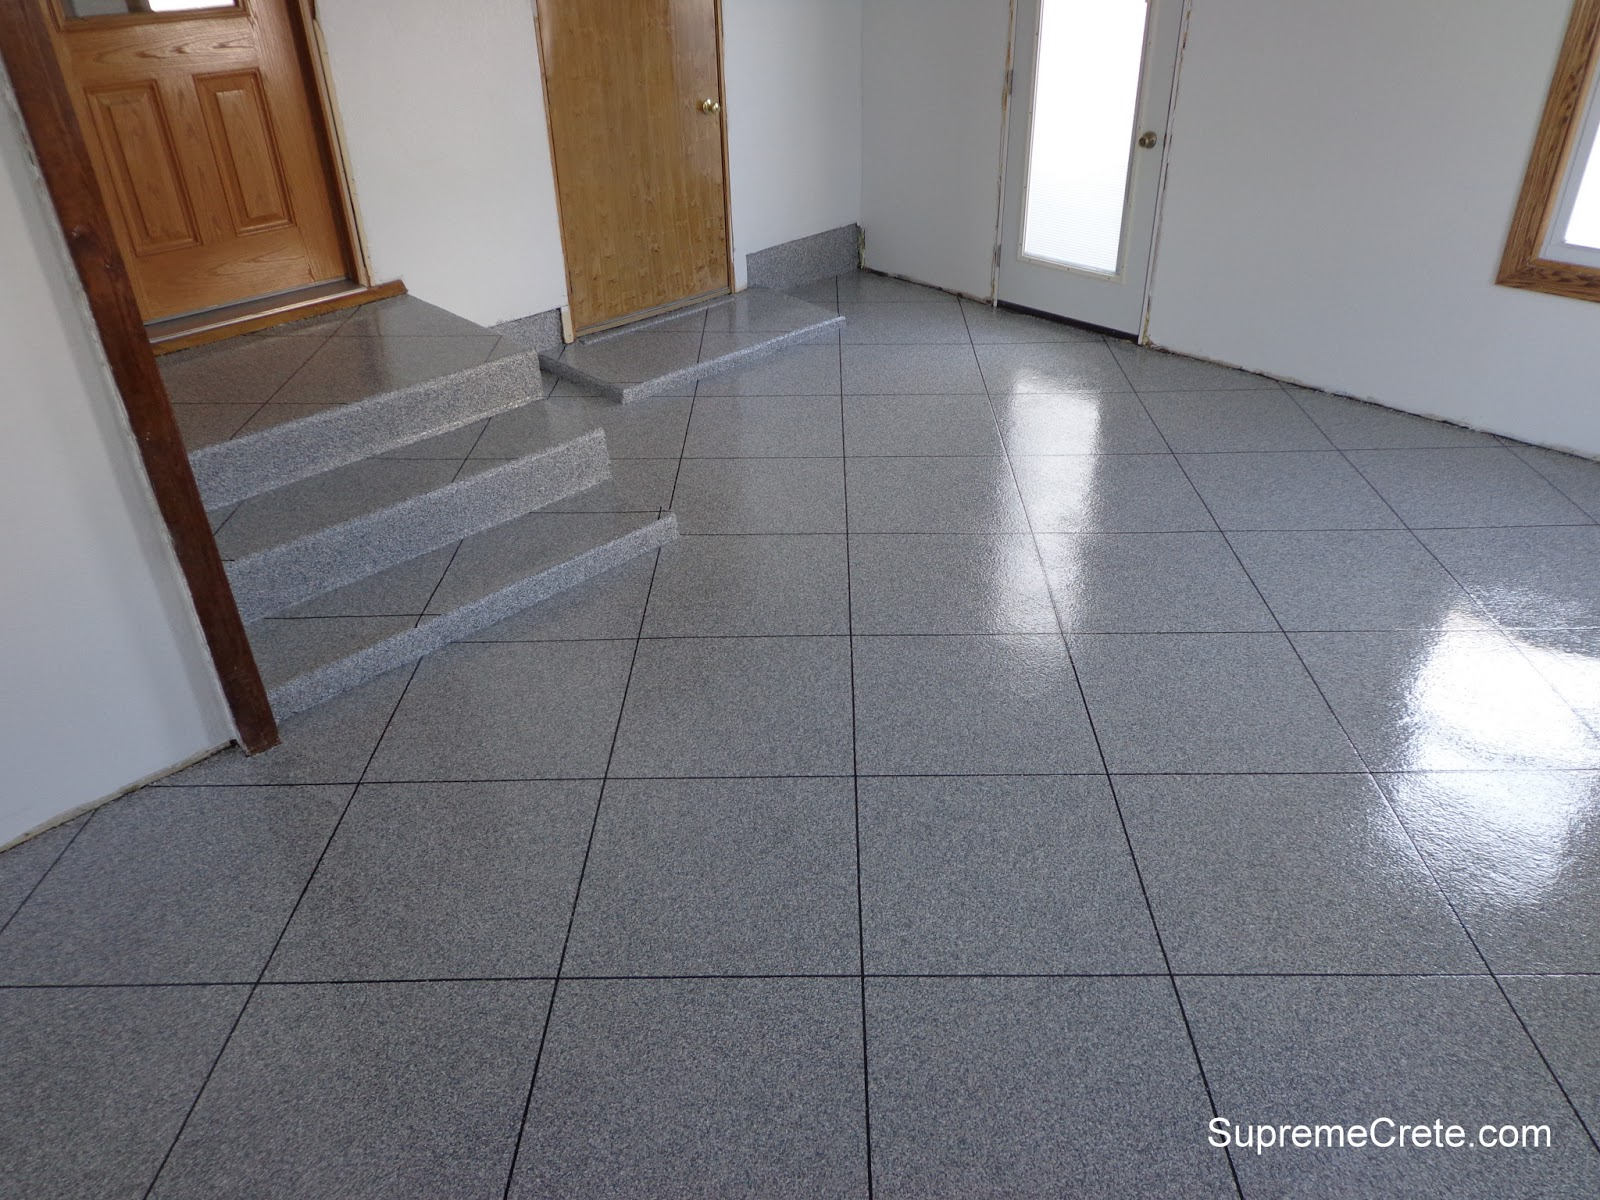 Related Articles Epoxy Flooring New York City Epoxy Flooring Coatings